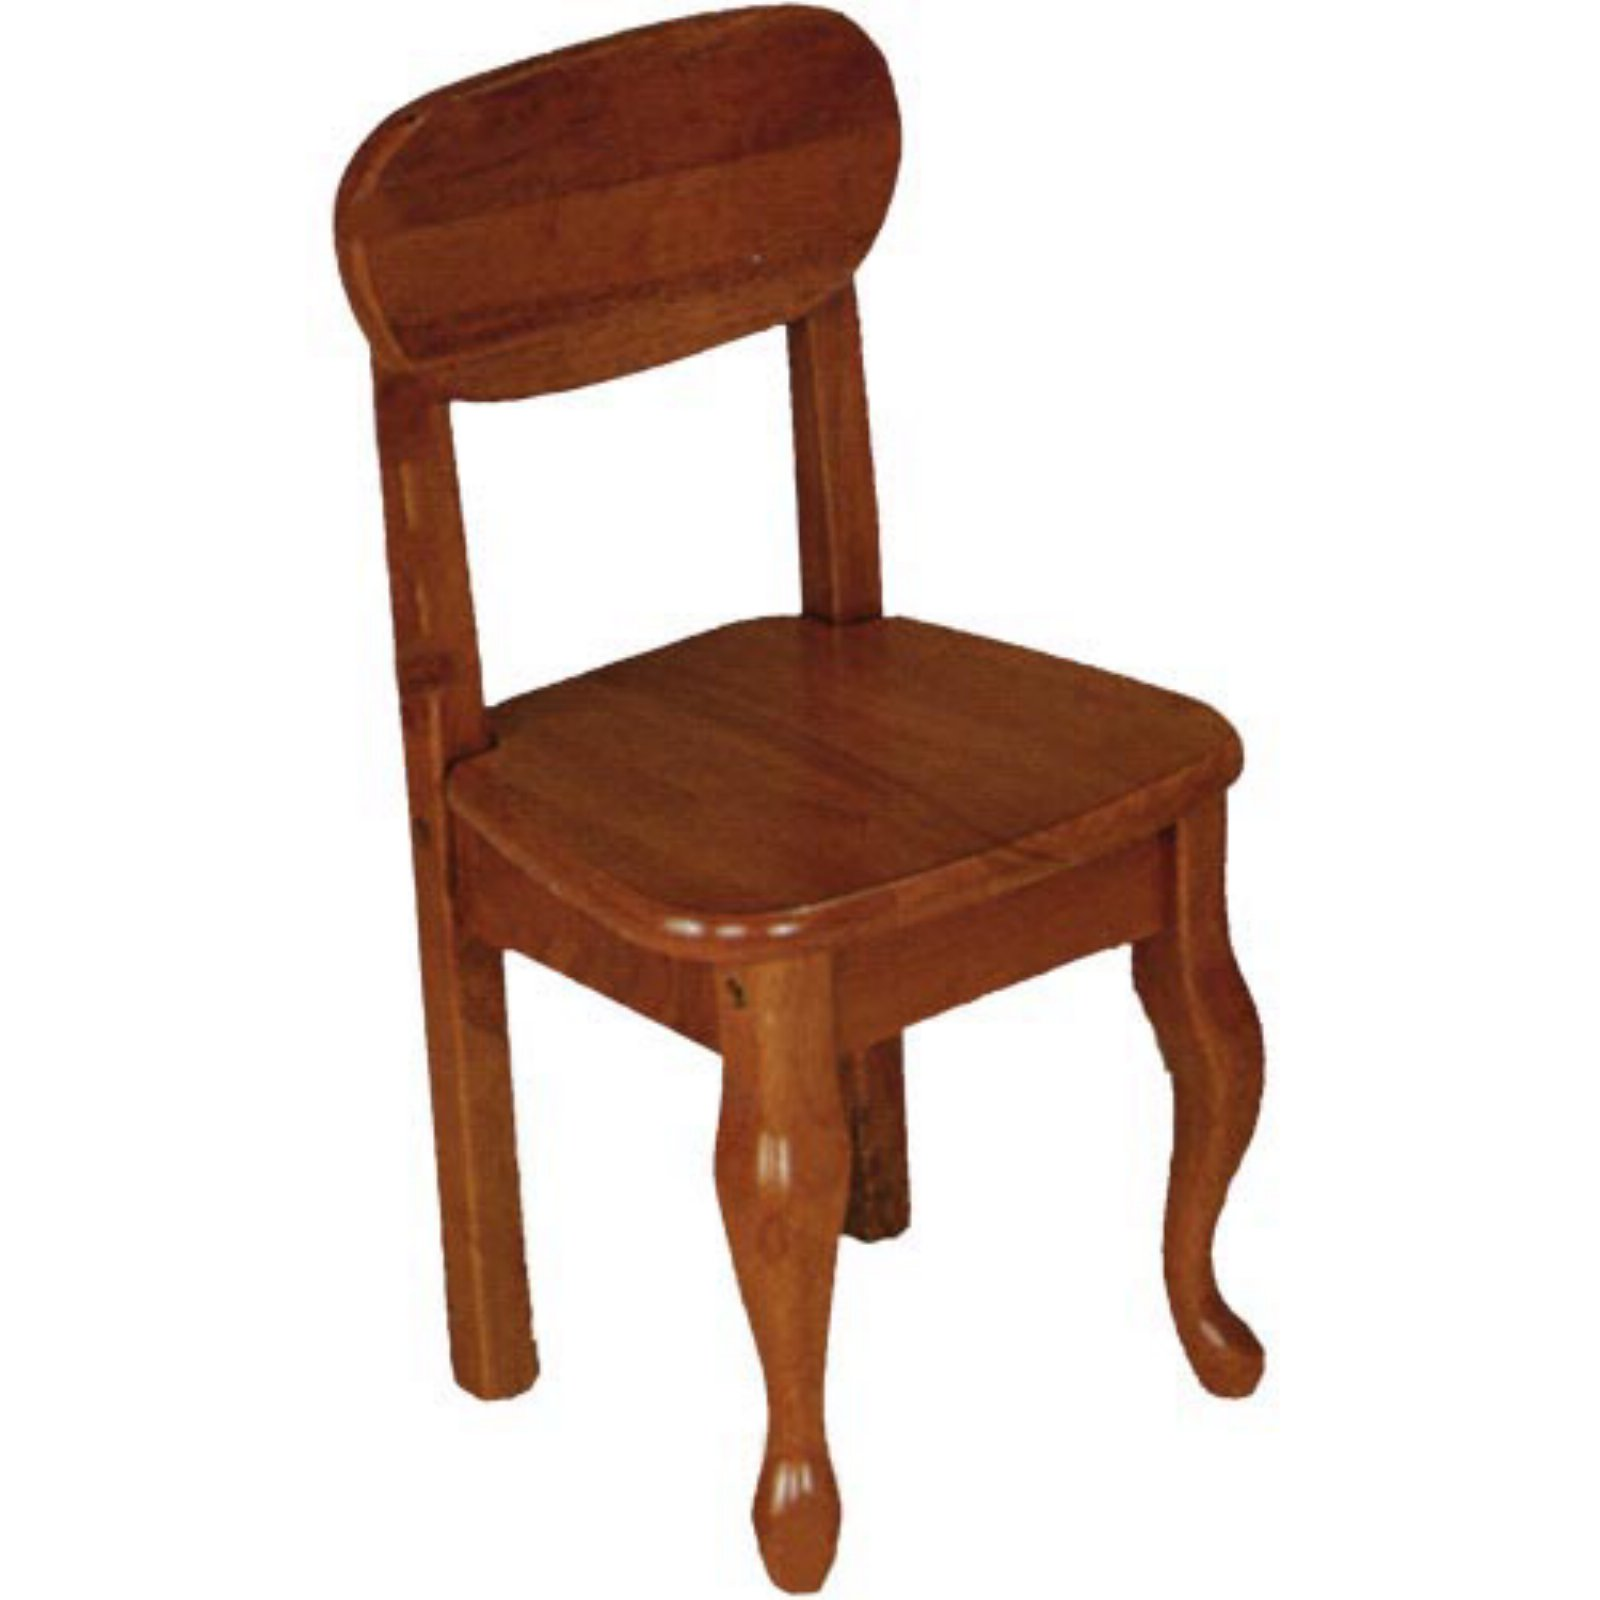 Gift Mark Queen Anne Chair - Set of 2